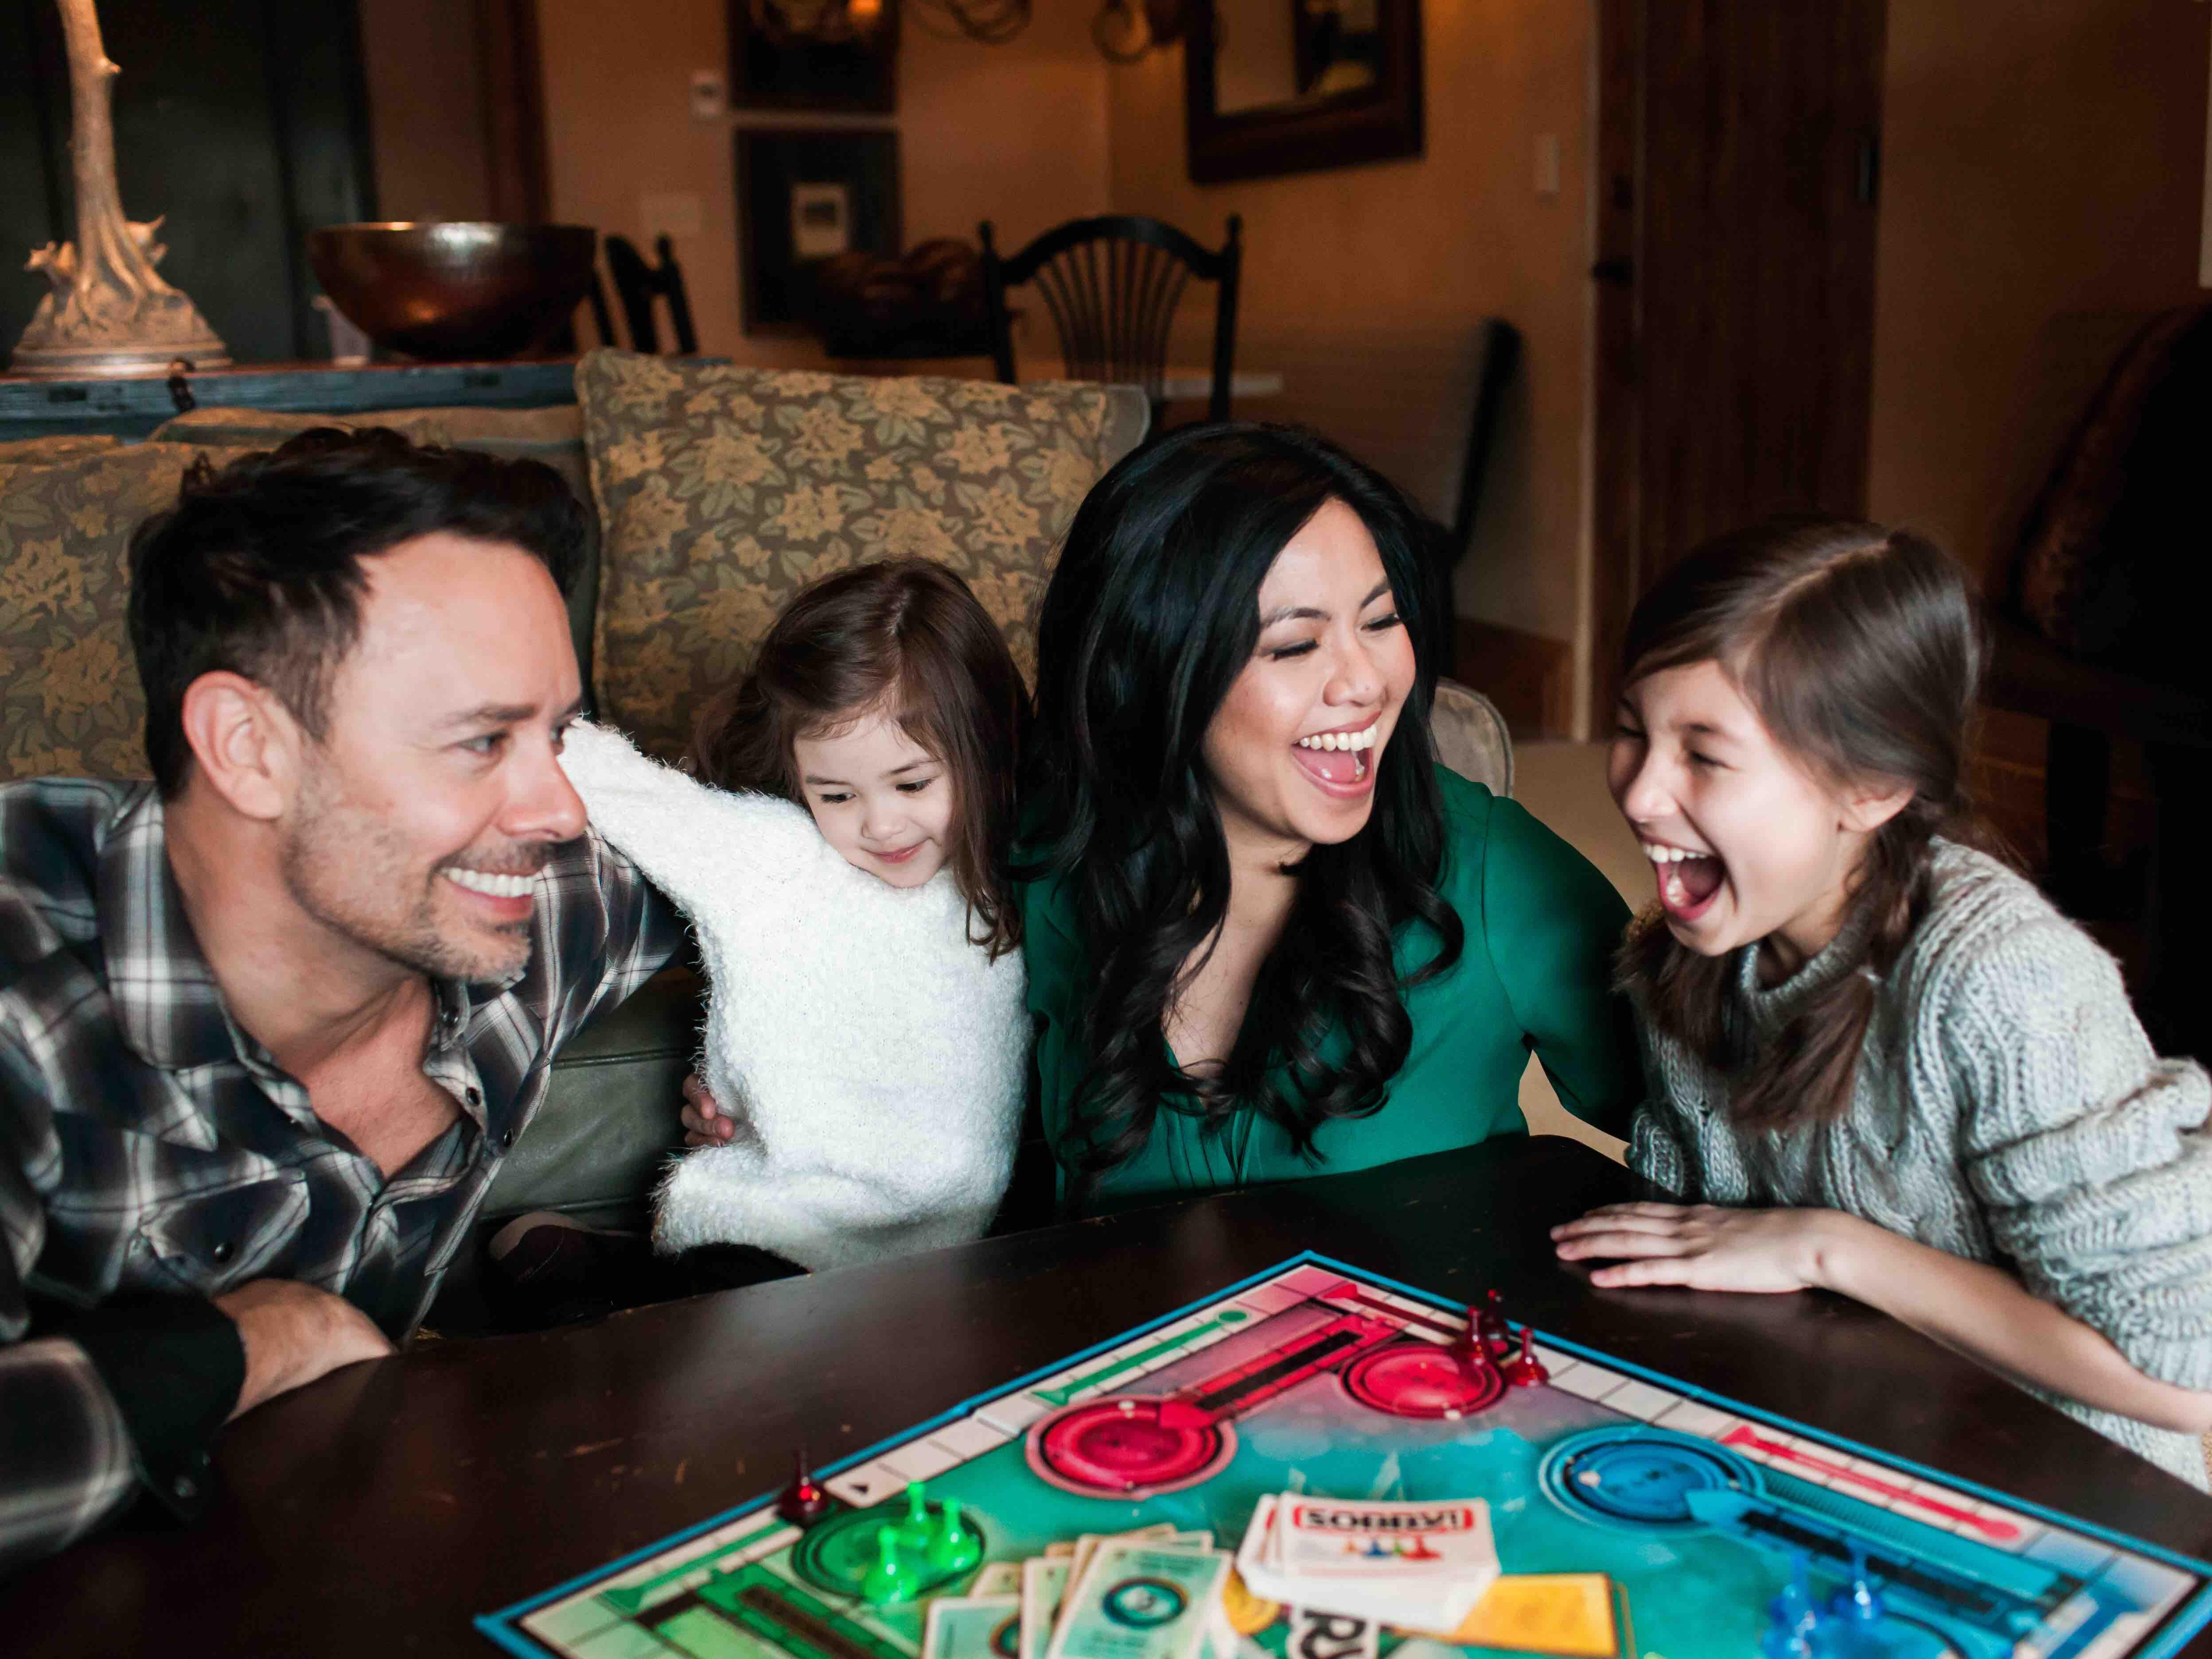 Family Games in Guest Room at The Chateaux Deer Valley